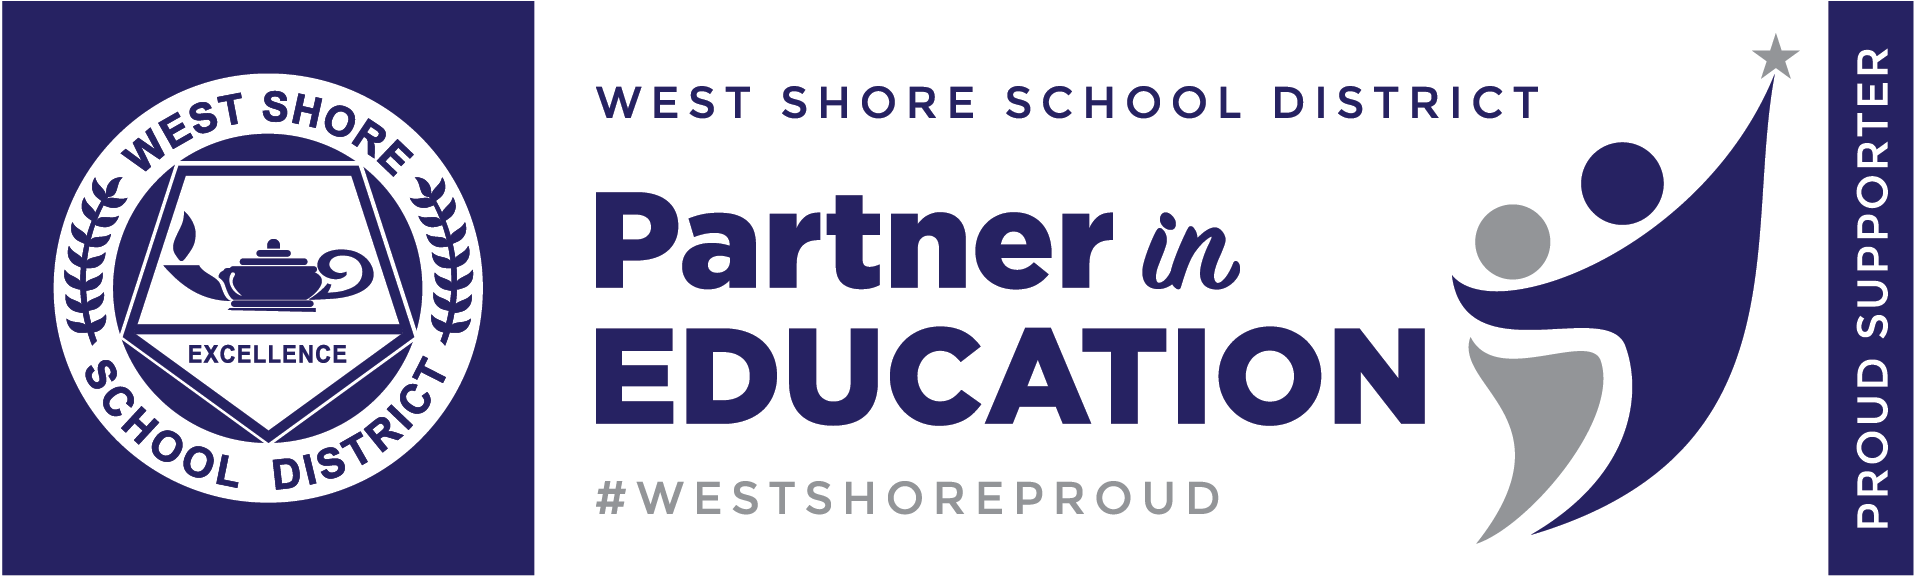 partners in education graphic